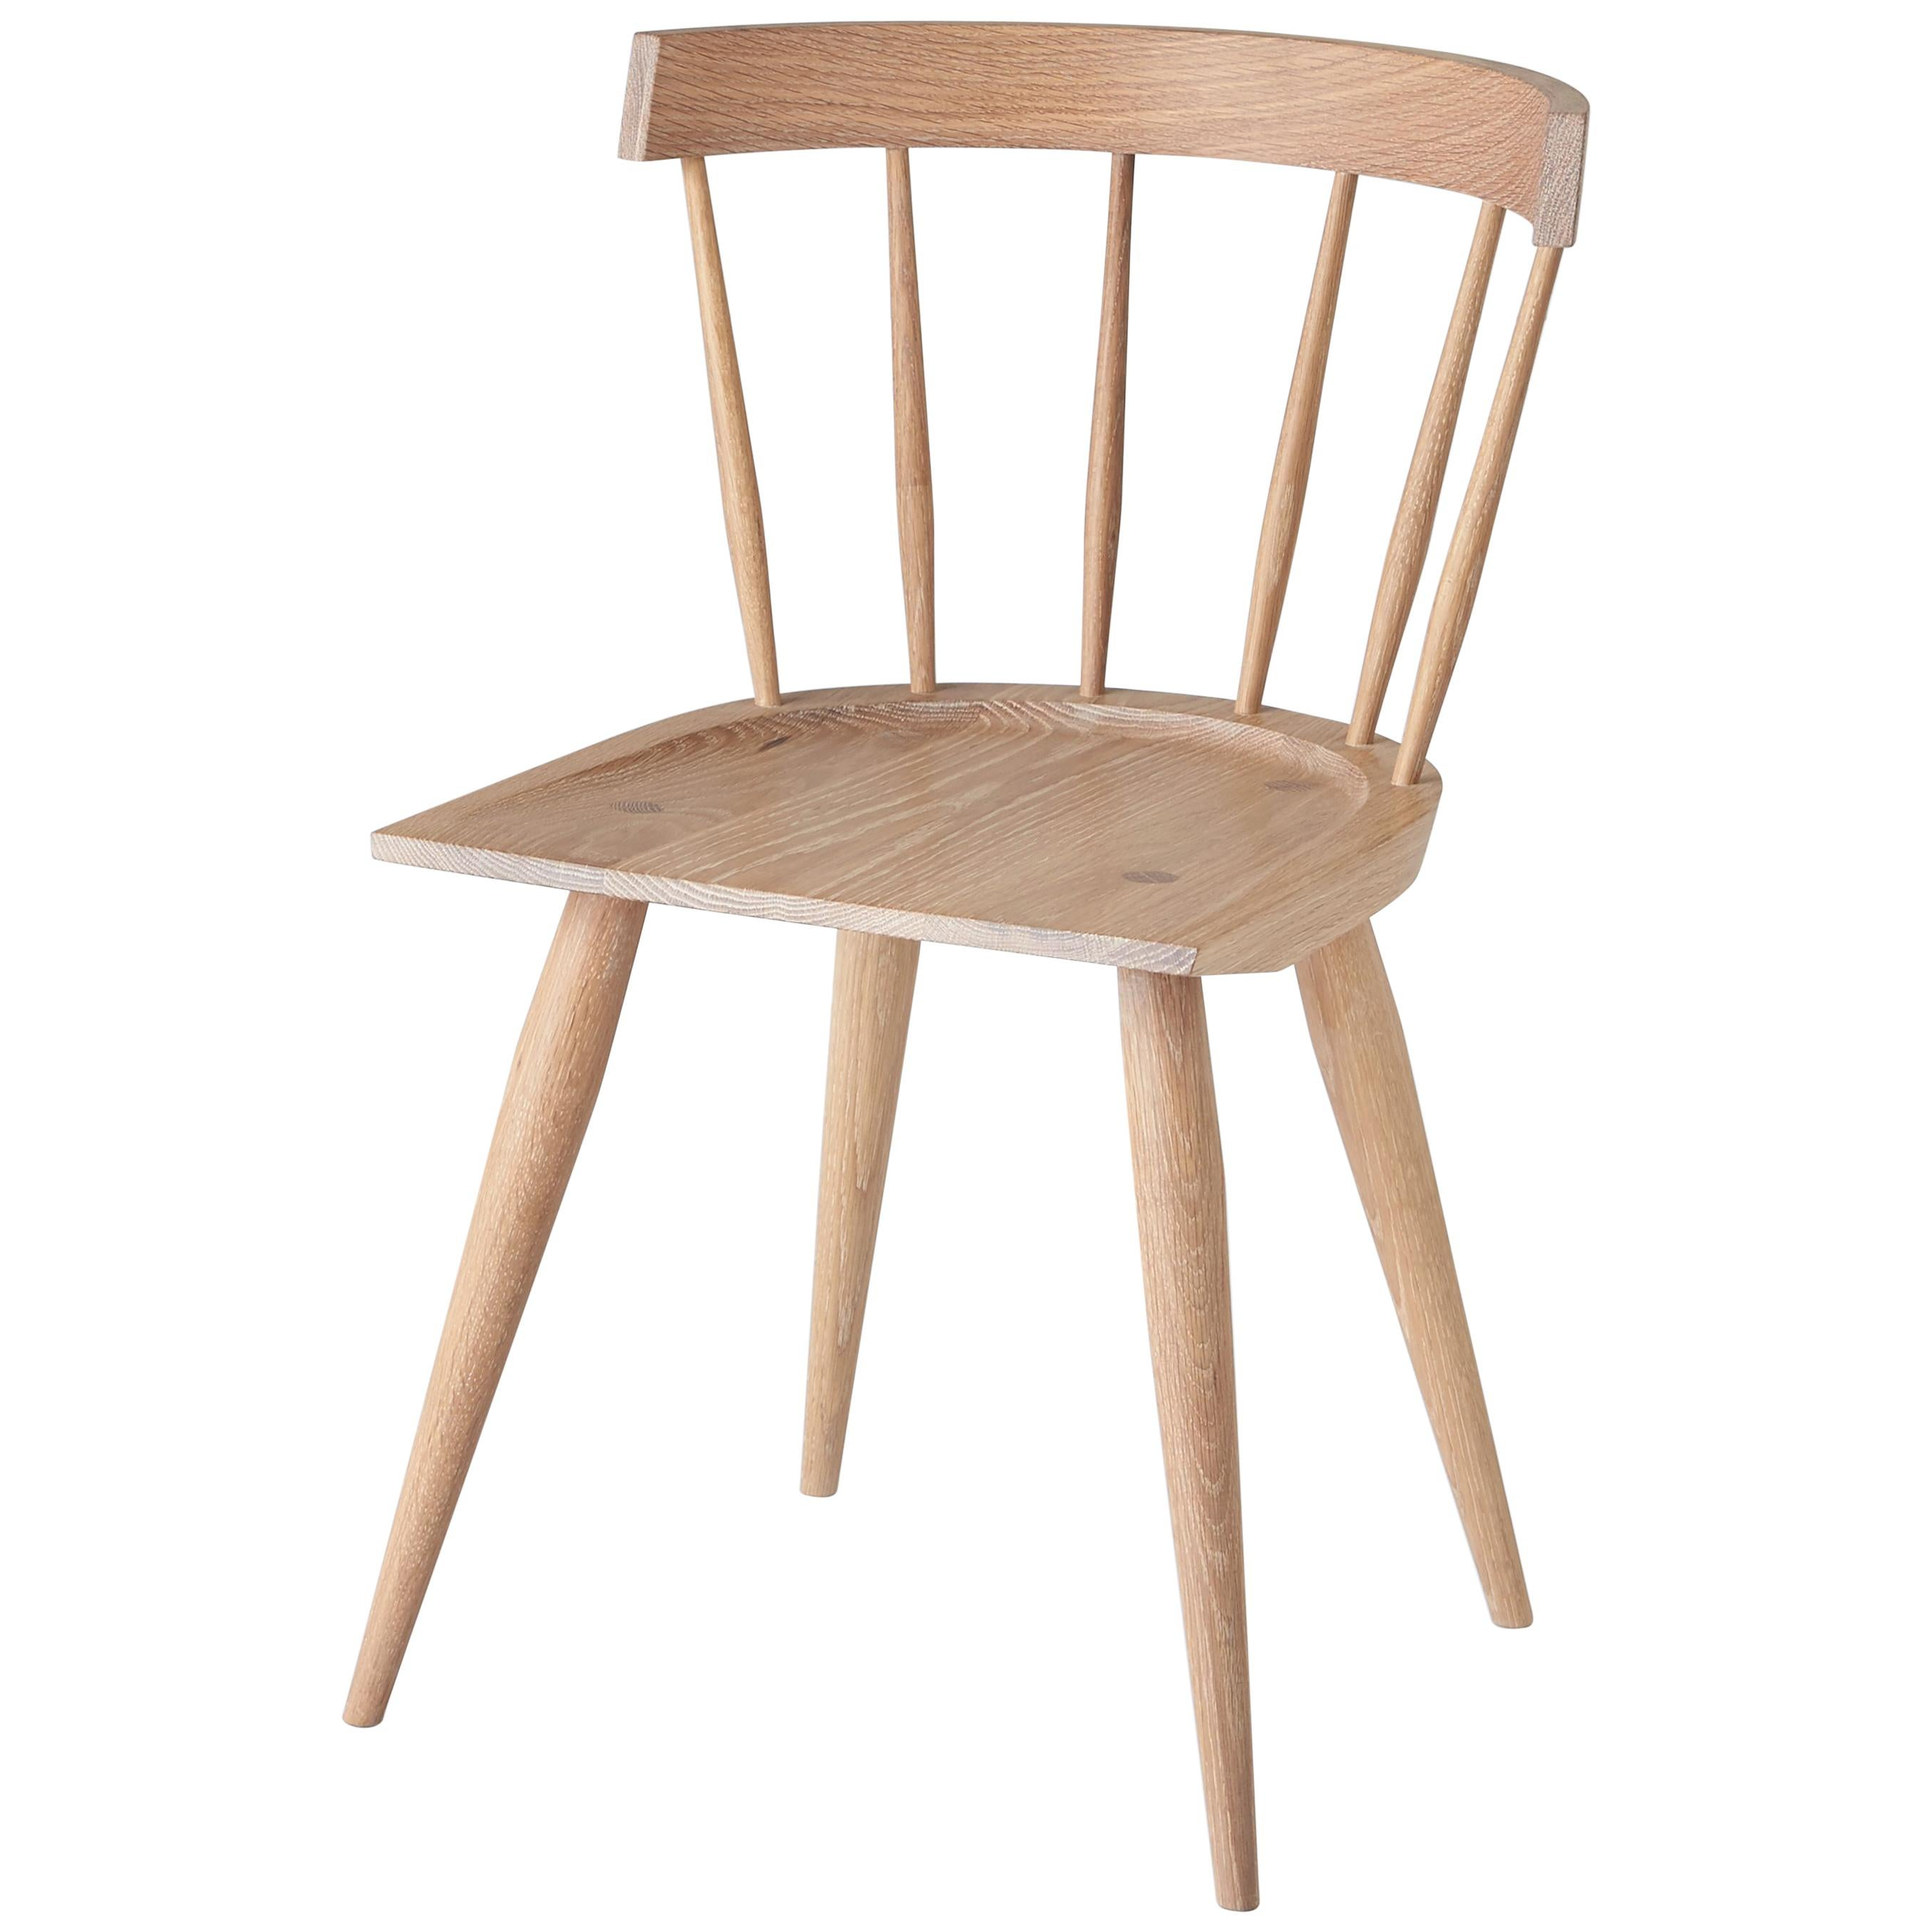 Modern Windsor Dining Chair Minimalist Design By Peter Coolican For Sale